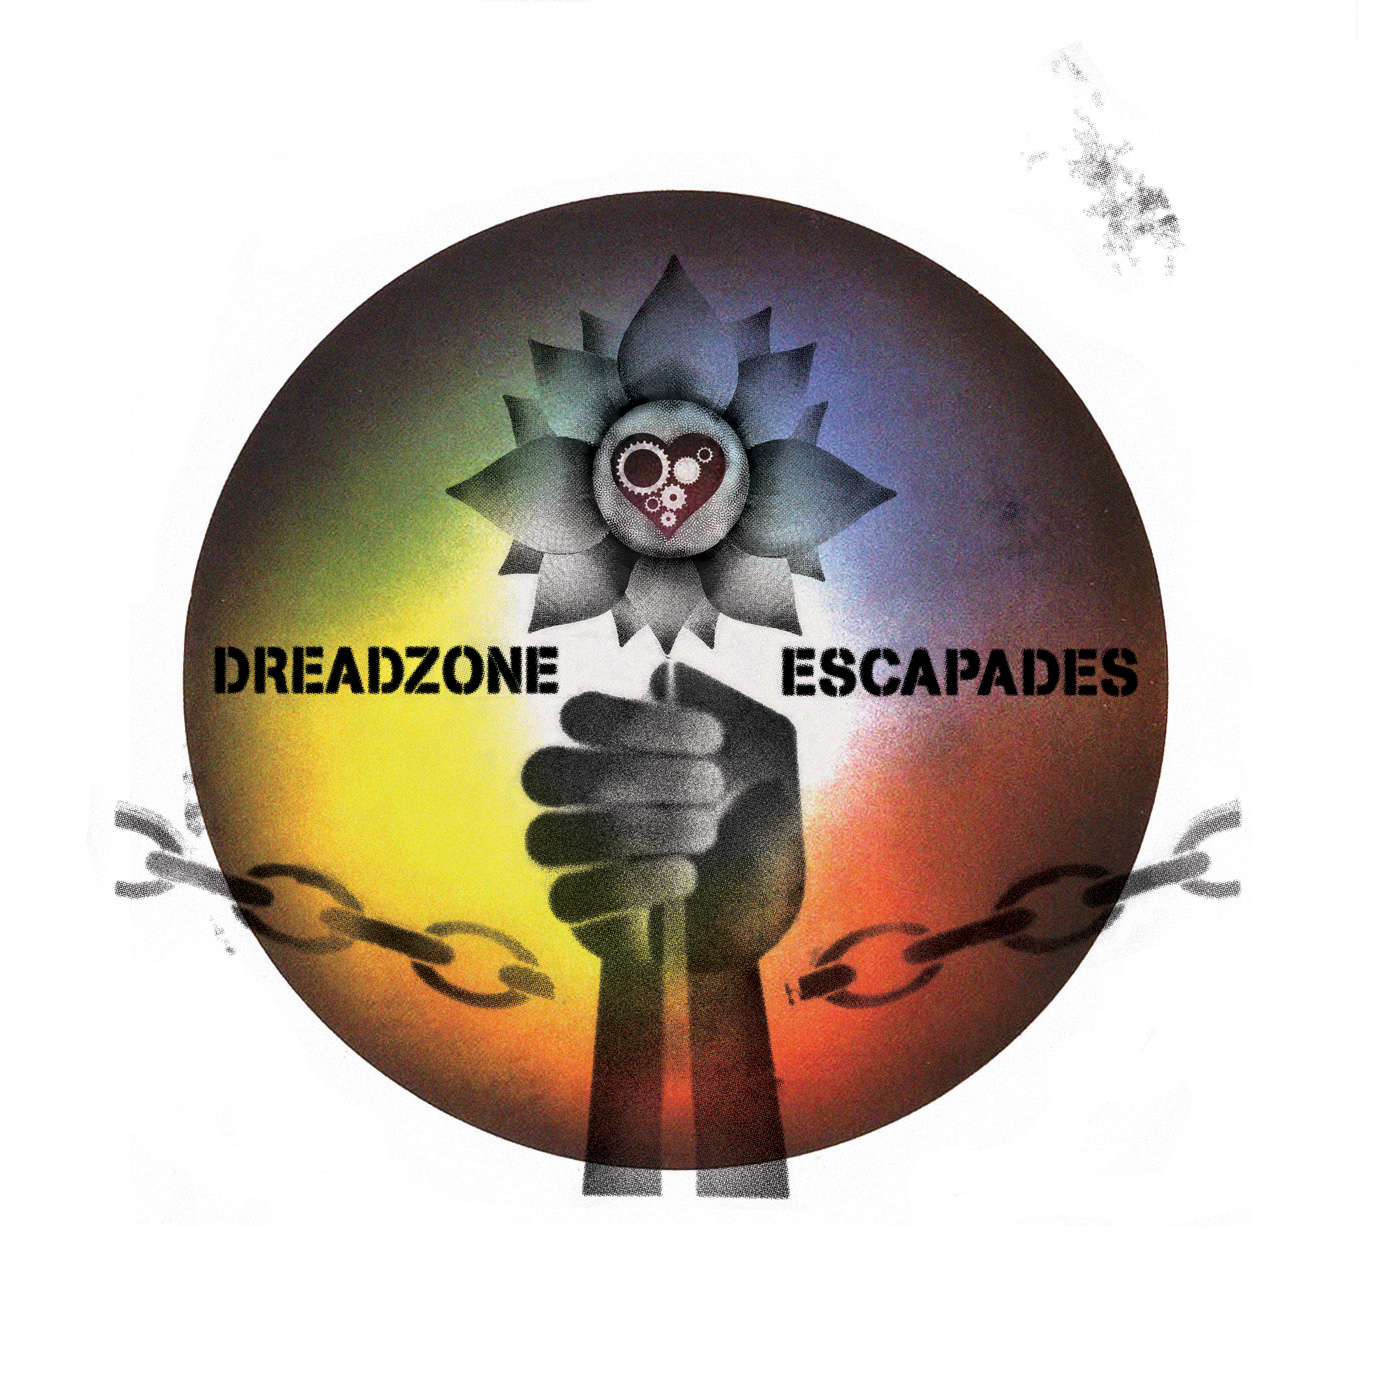 DREADZONE ESCAPADES